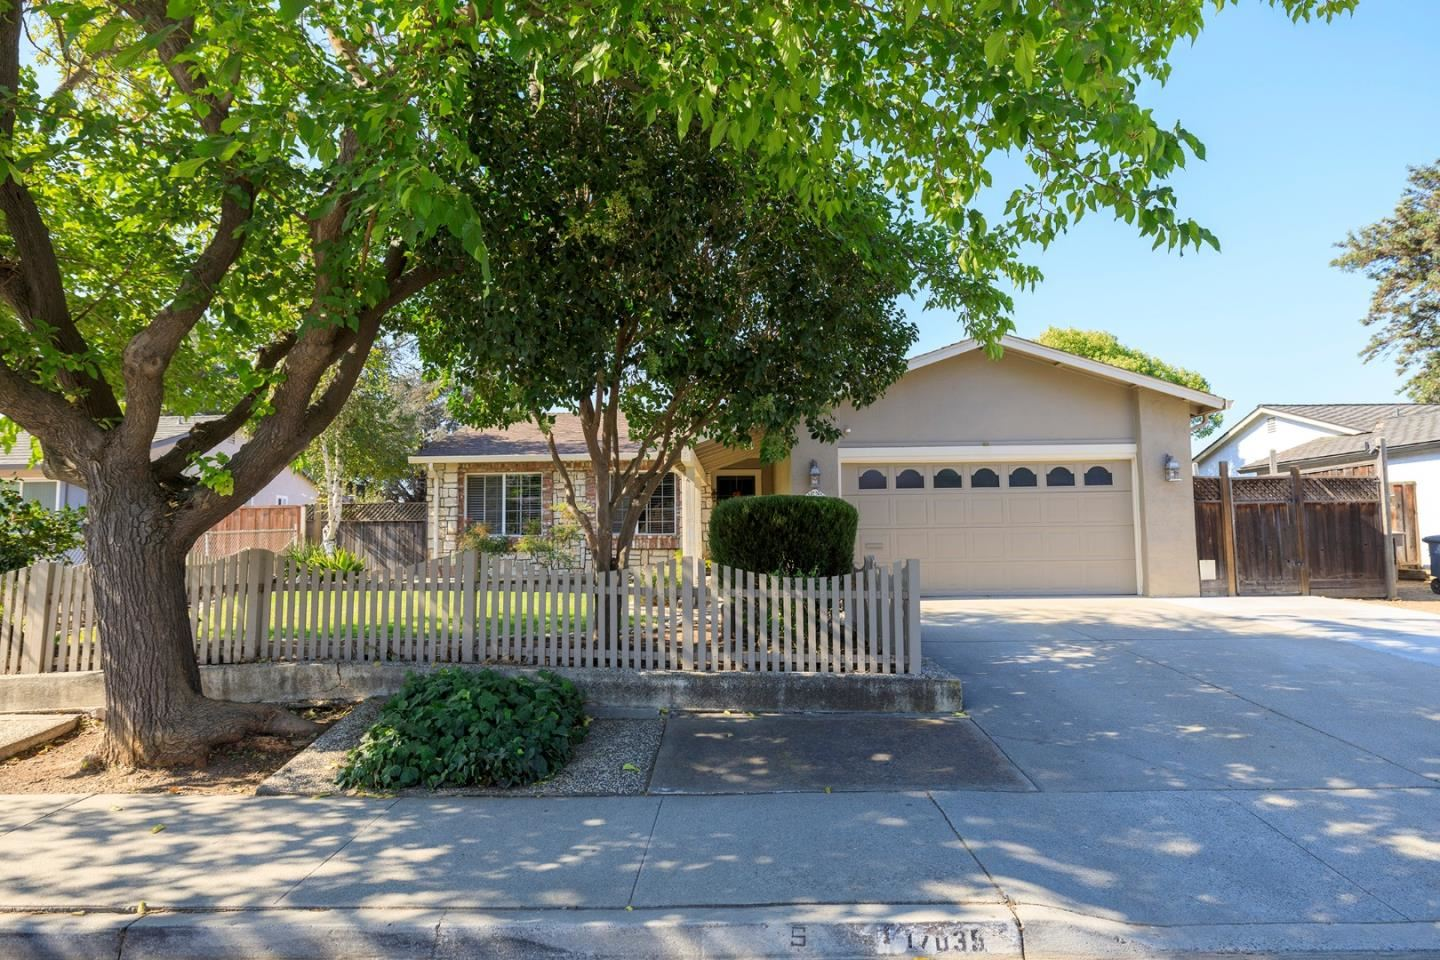 Photo for 17035 Peppertree DR, MORGAN HILL, CA 95037 (MLS # ML81815837)